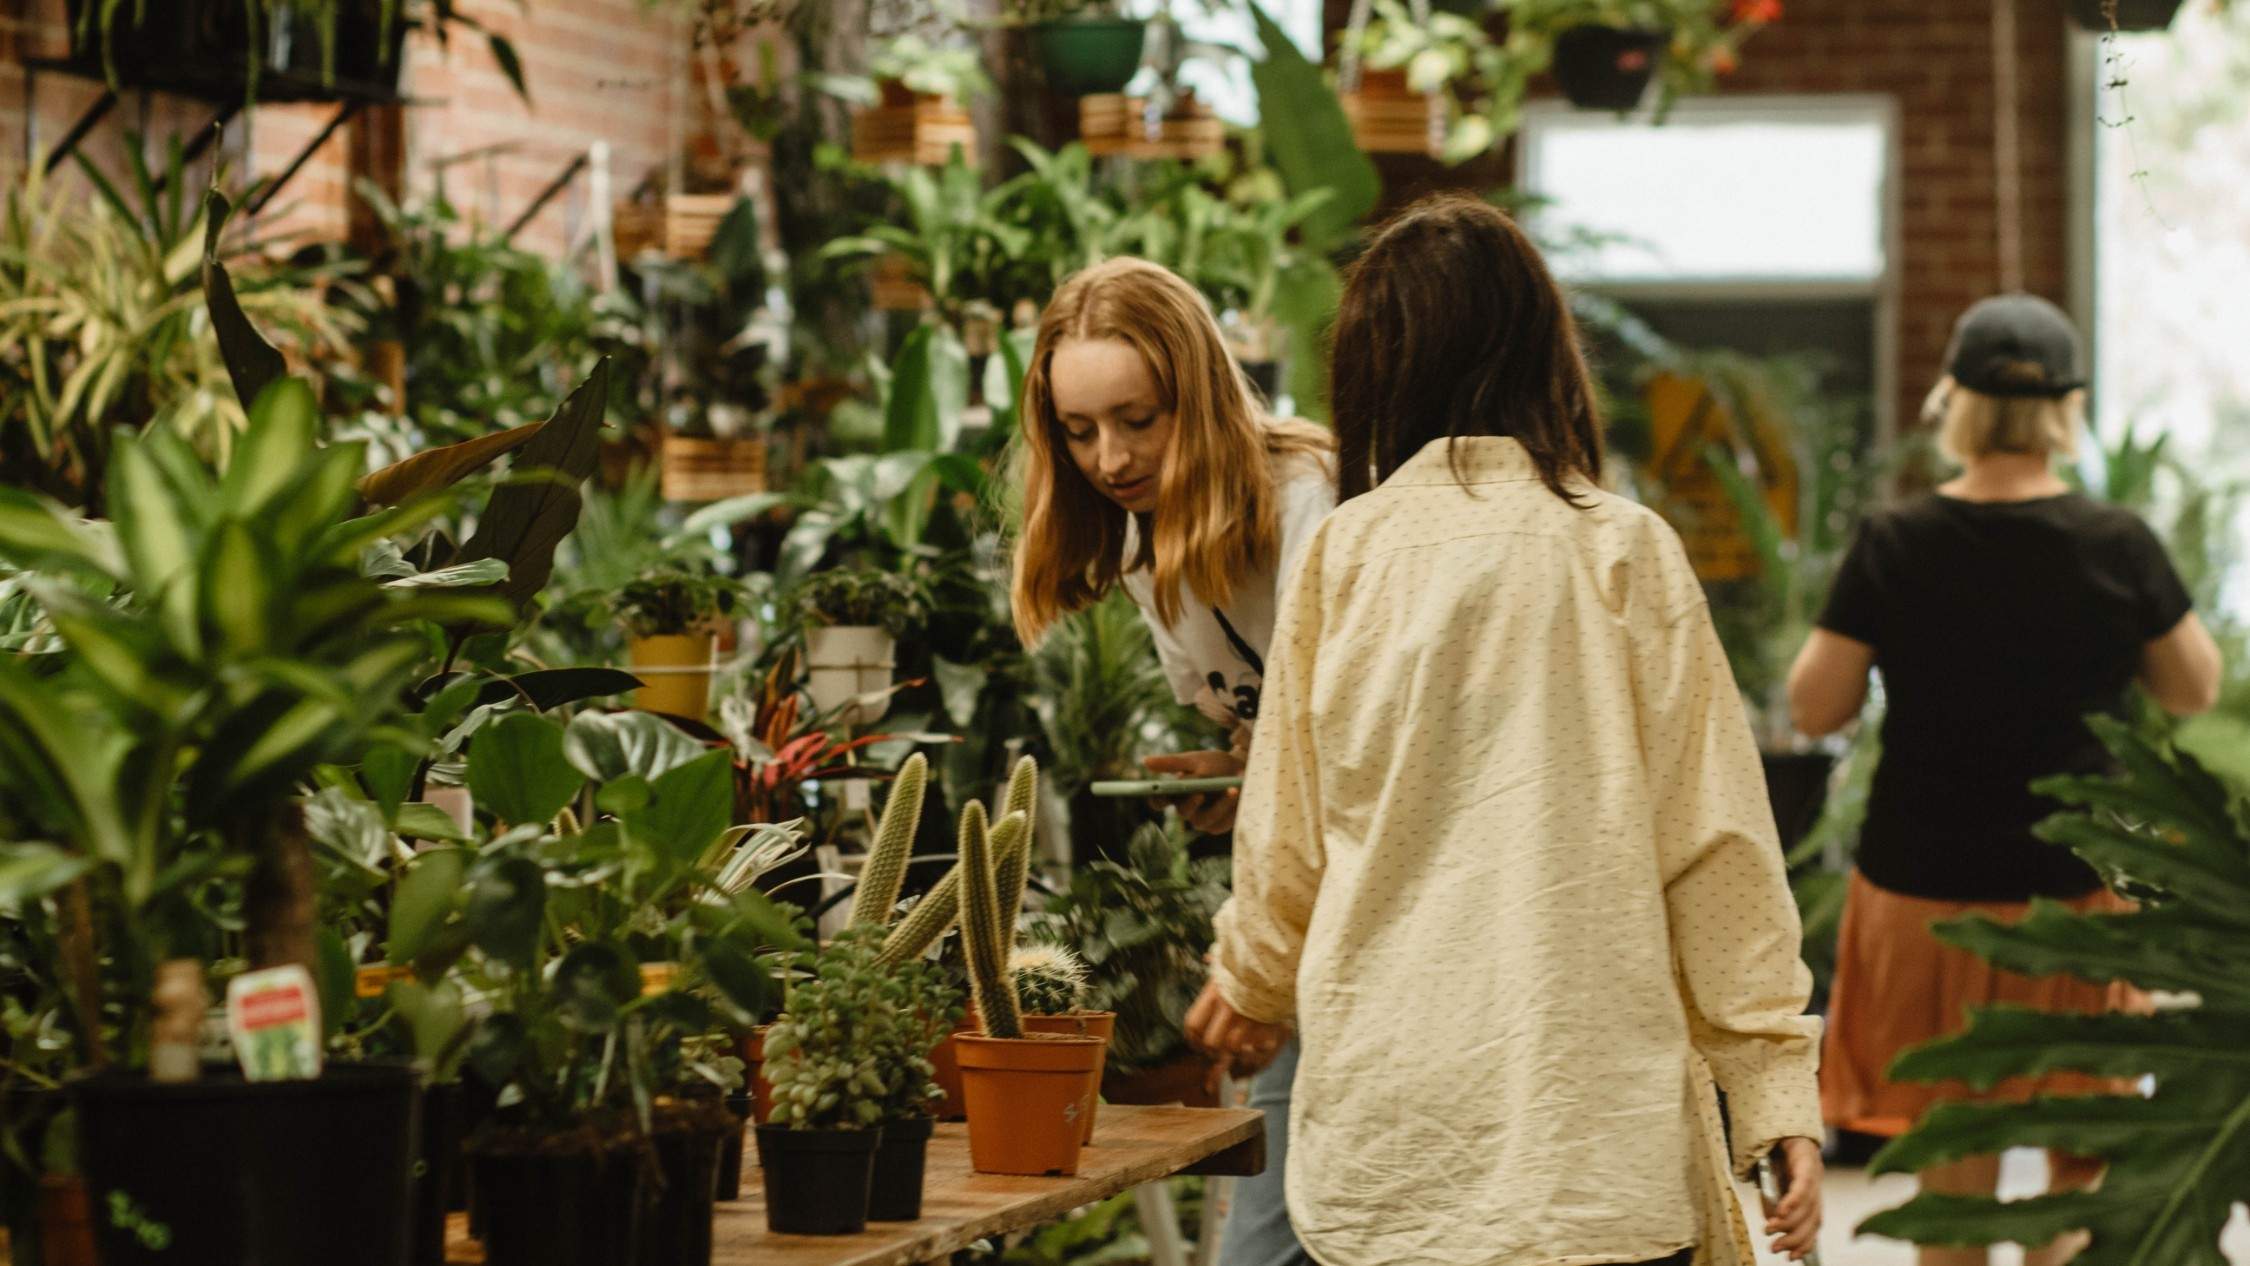 Two women looking at a table covered in pot plants